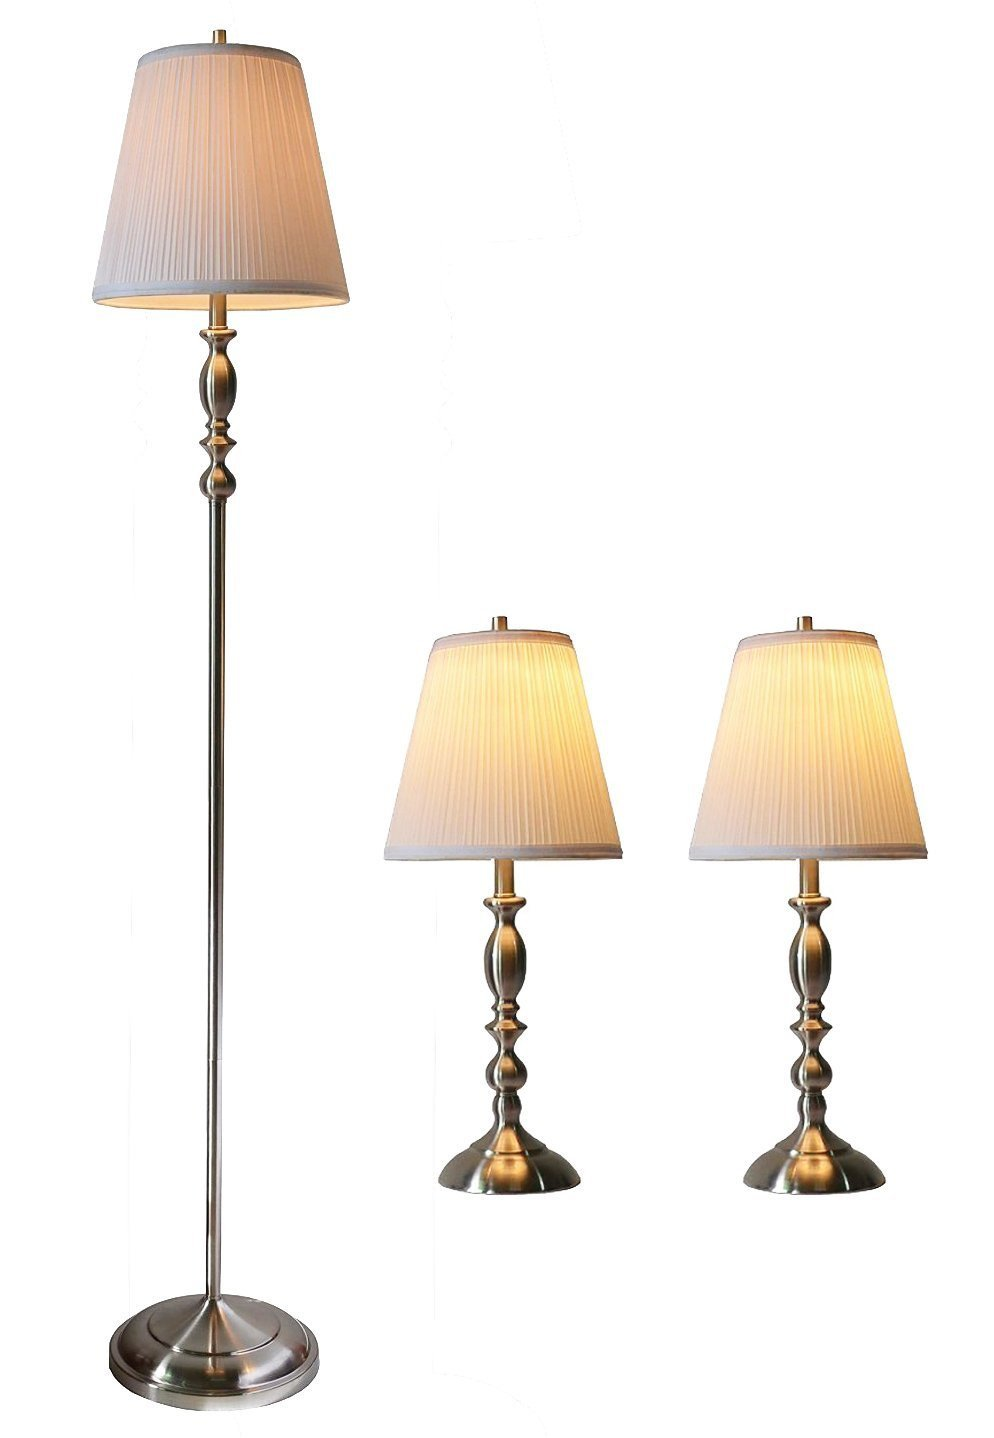 Eleanor 3 piece table and floor lamp set with shades urbanest eleanor 3 piece table and floor lamp set with shades aloadofball Image collections